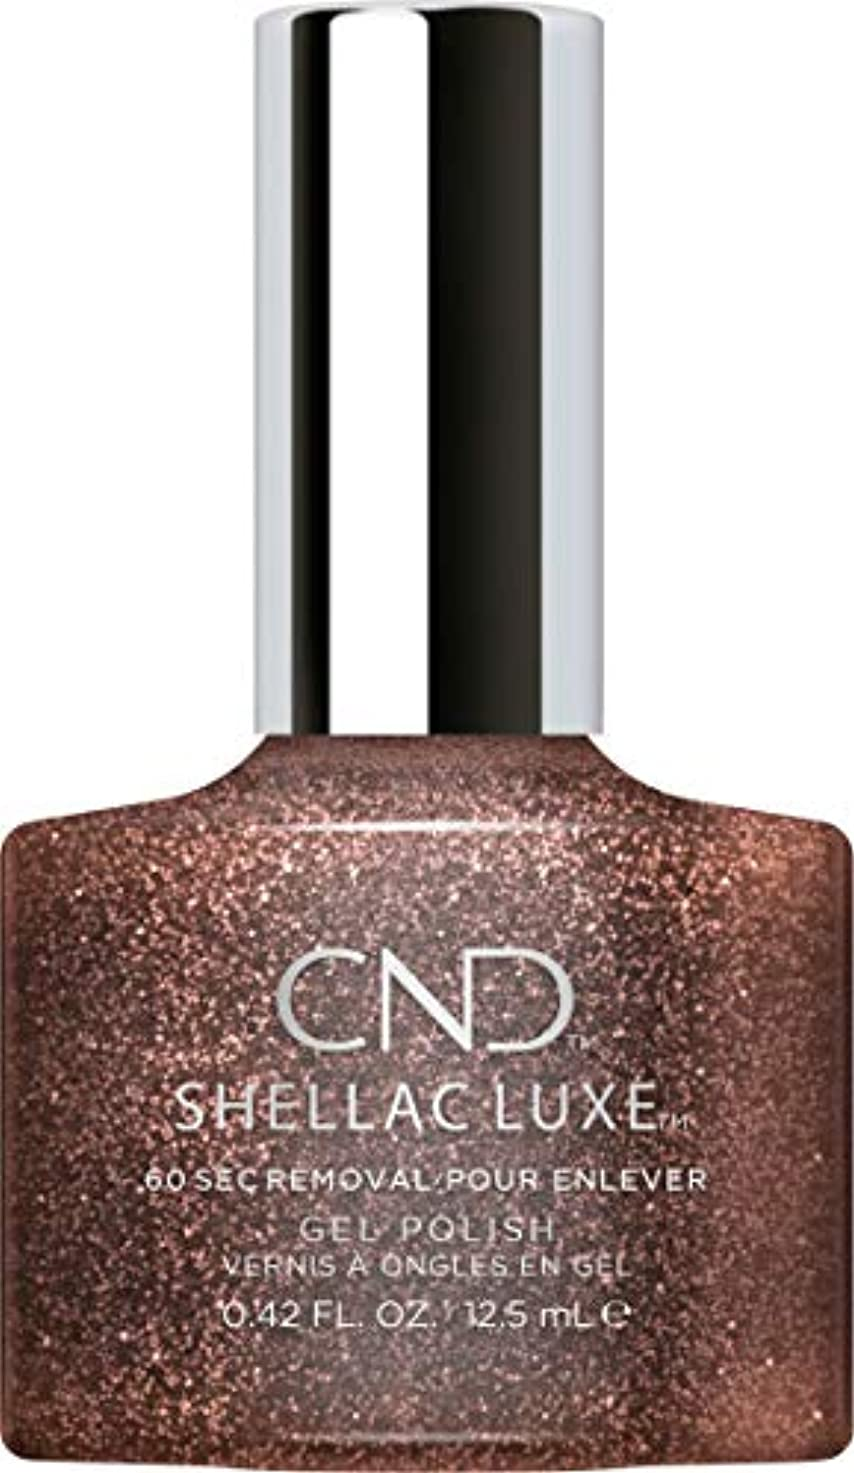 CND Shellac Luxe - Grace - 12.5 ml / 0.42 oz